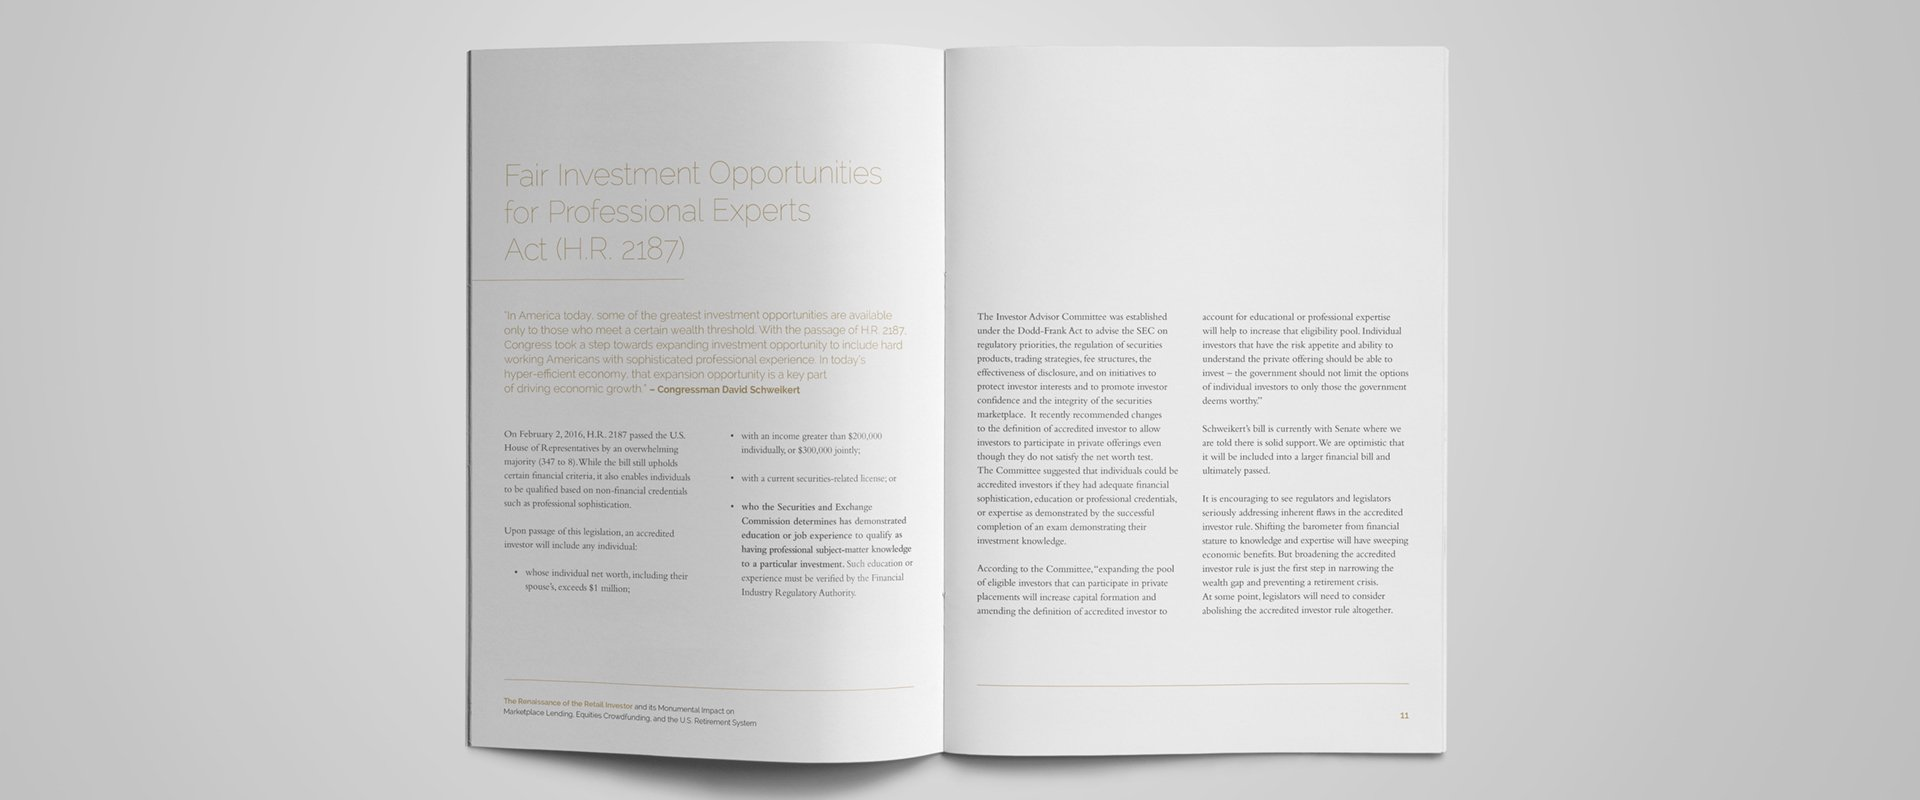 Typographic whitepaper spread using large lettering for titles along with complimentary fonts and colours.